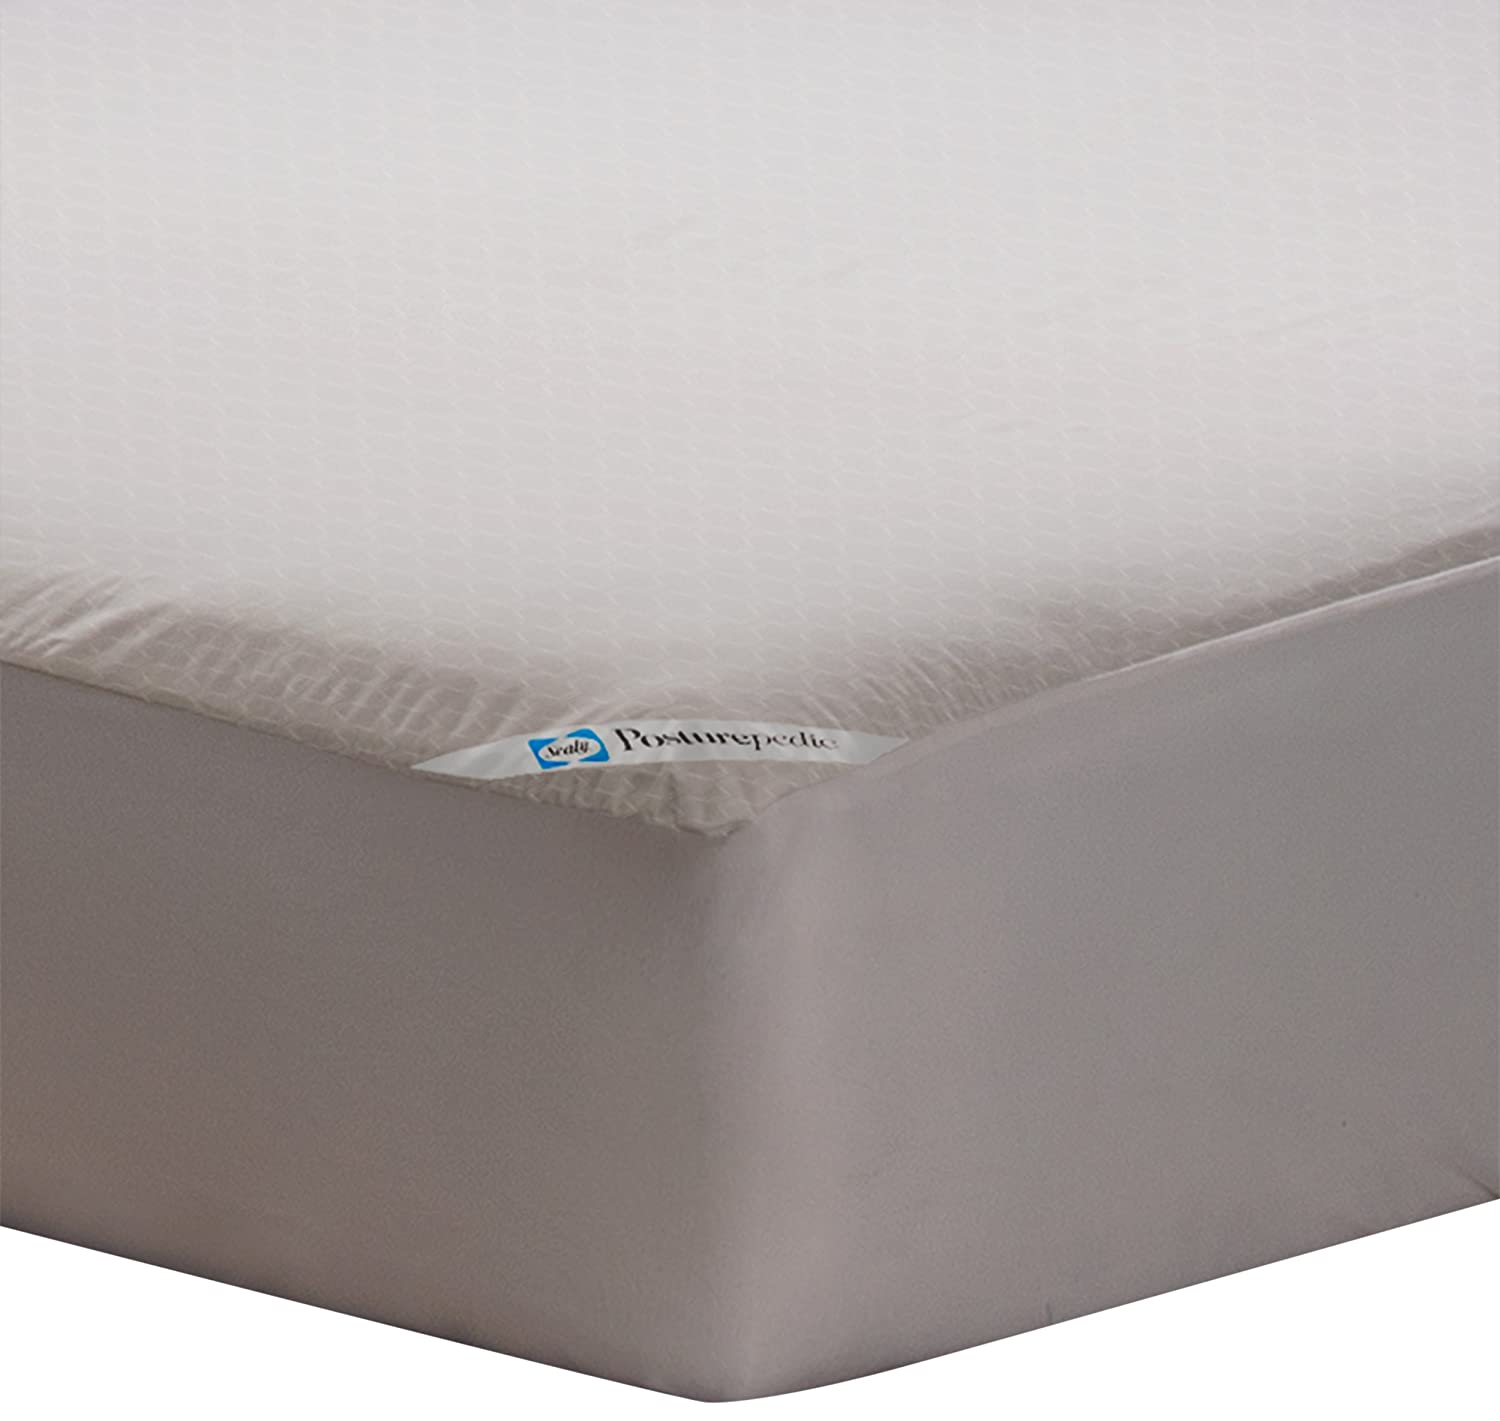 Sealy Posturepedic Allergy Protection Zippered Mattress Protector, King